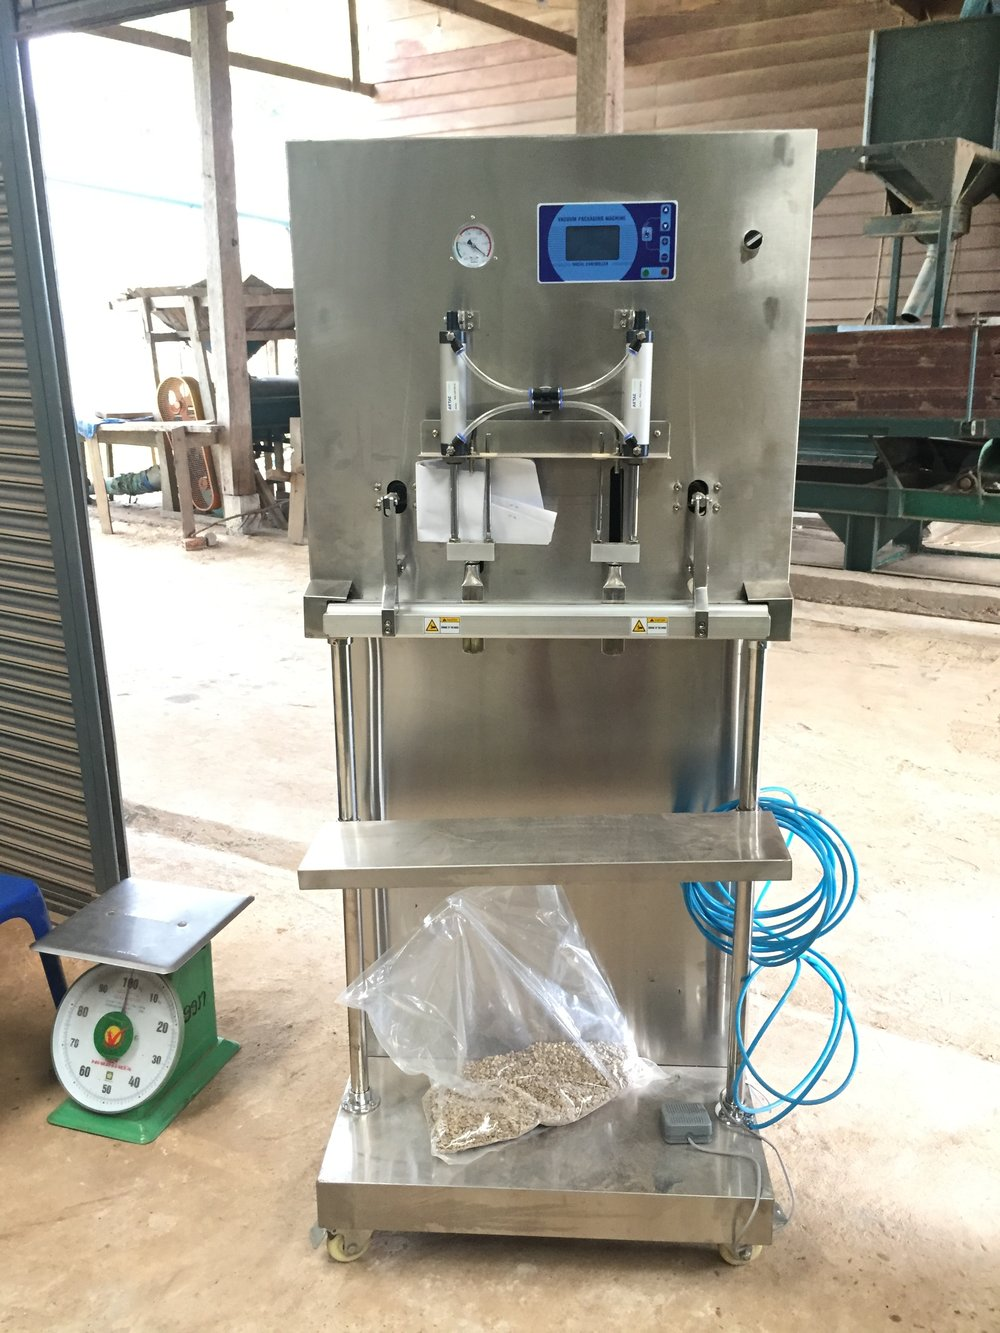 Nitrogen-Flushing, Vacuum-Sealing Machinery